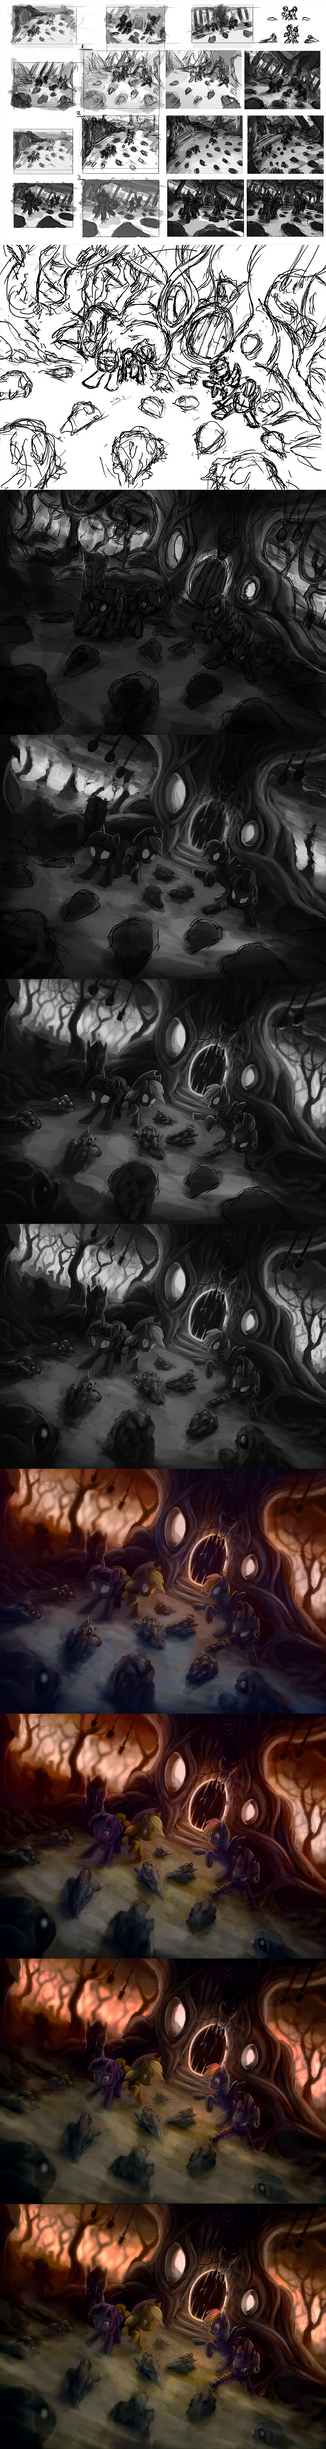 At Zecora's Glade - Part 1 [WIP] by AssasinMonkey